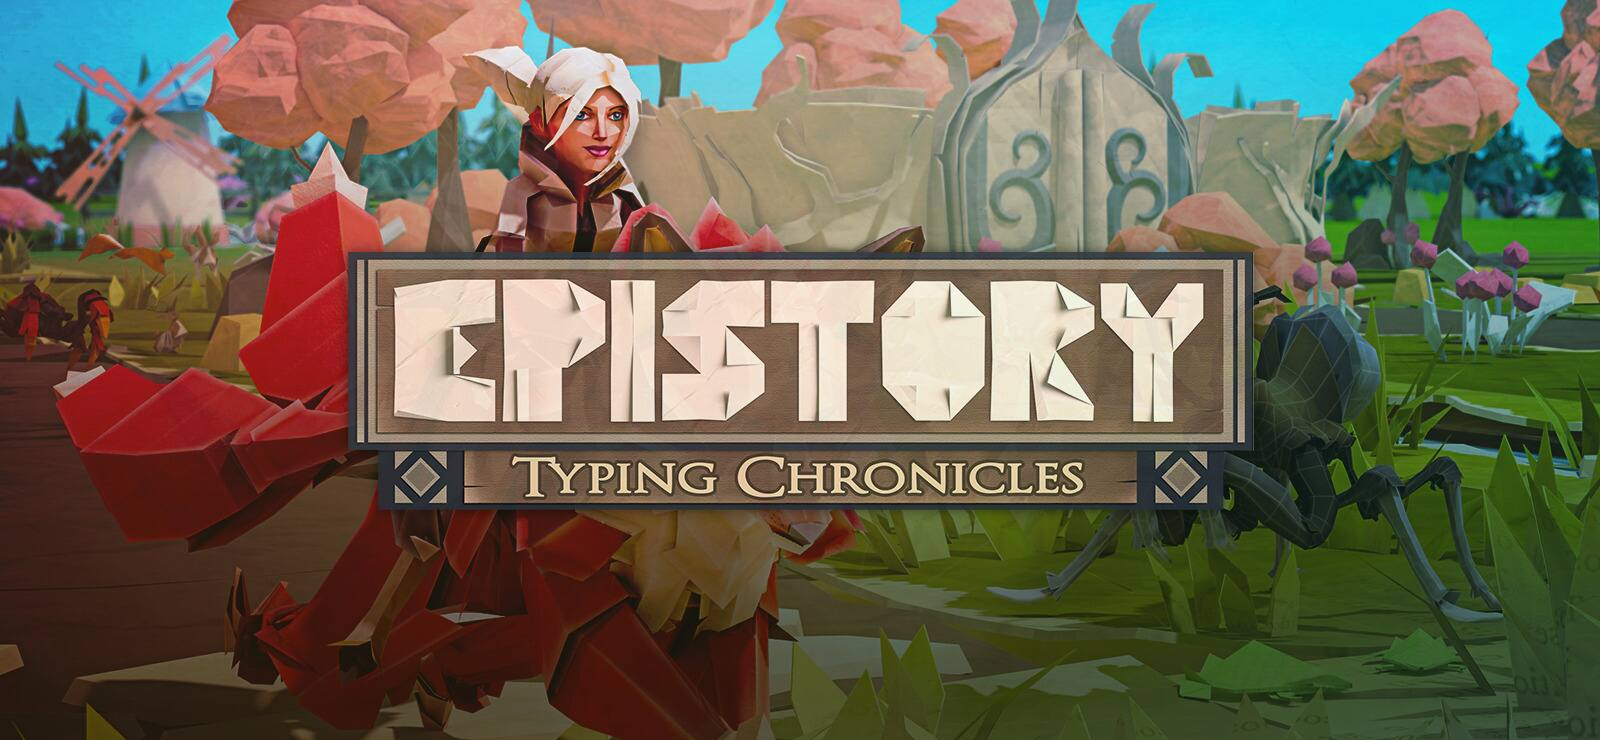 Epistory - Typing Chronicles on sale for 75% off.  Now for $3.74 at GOG.com